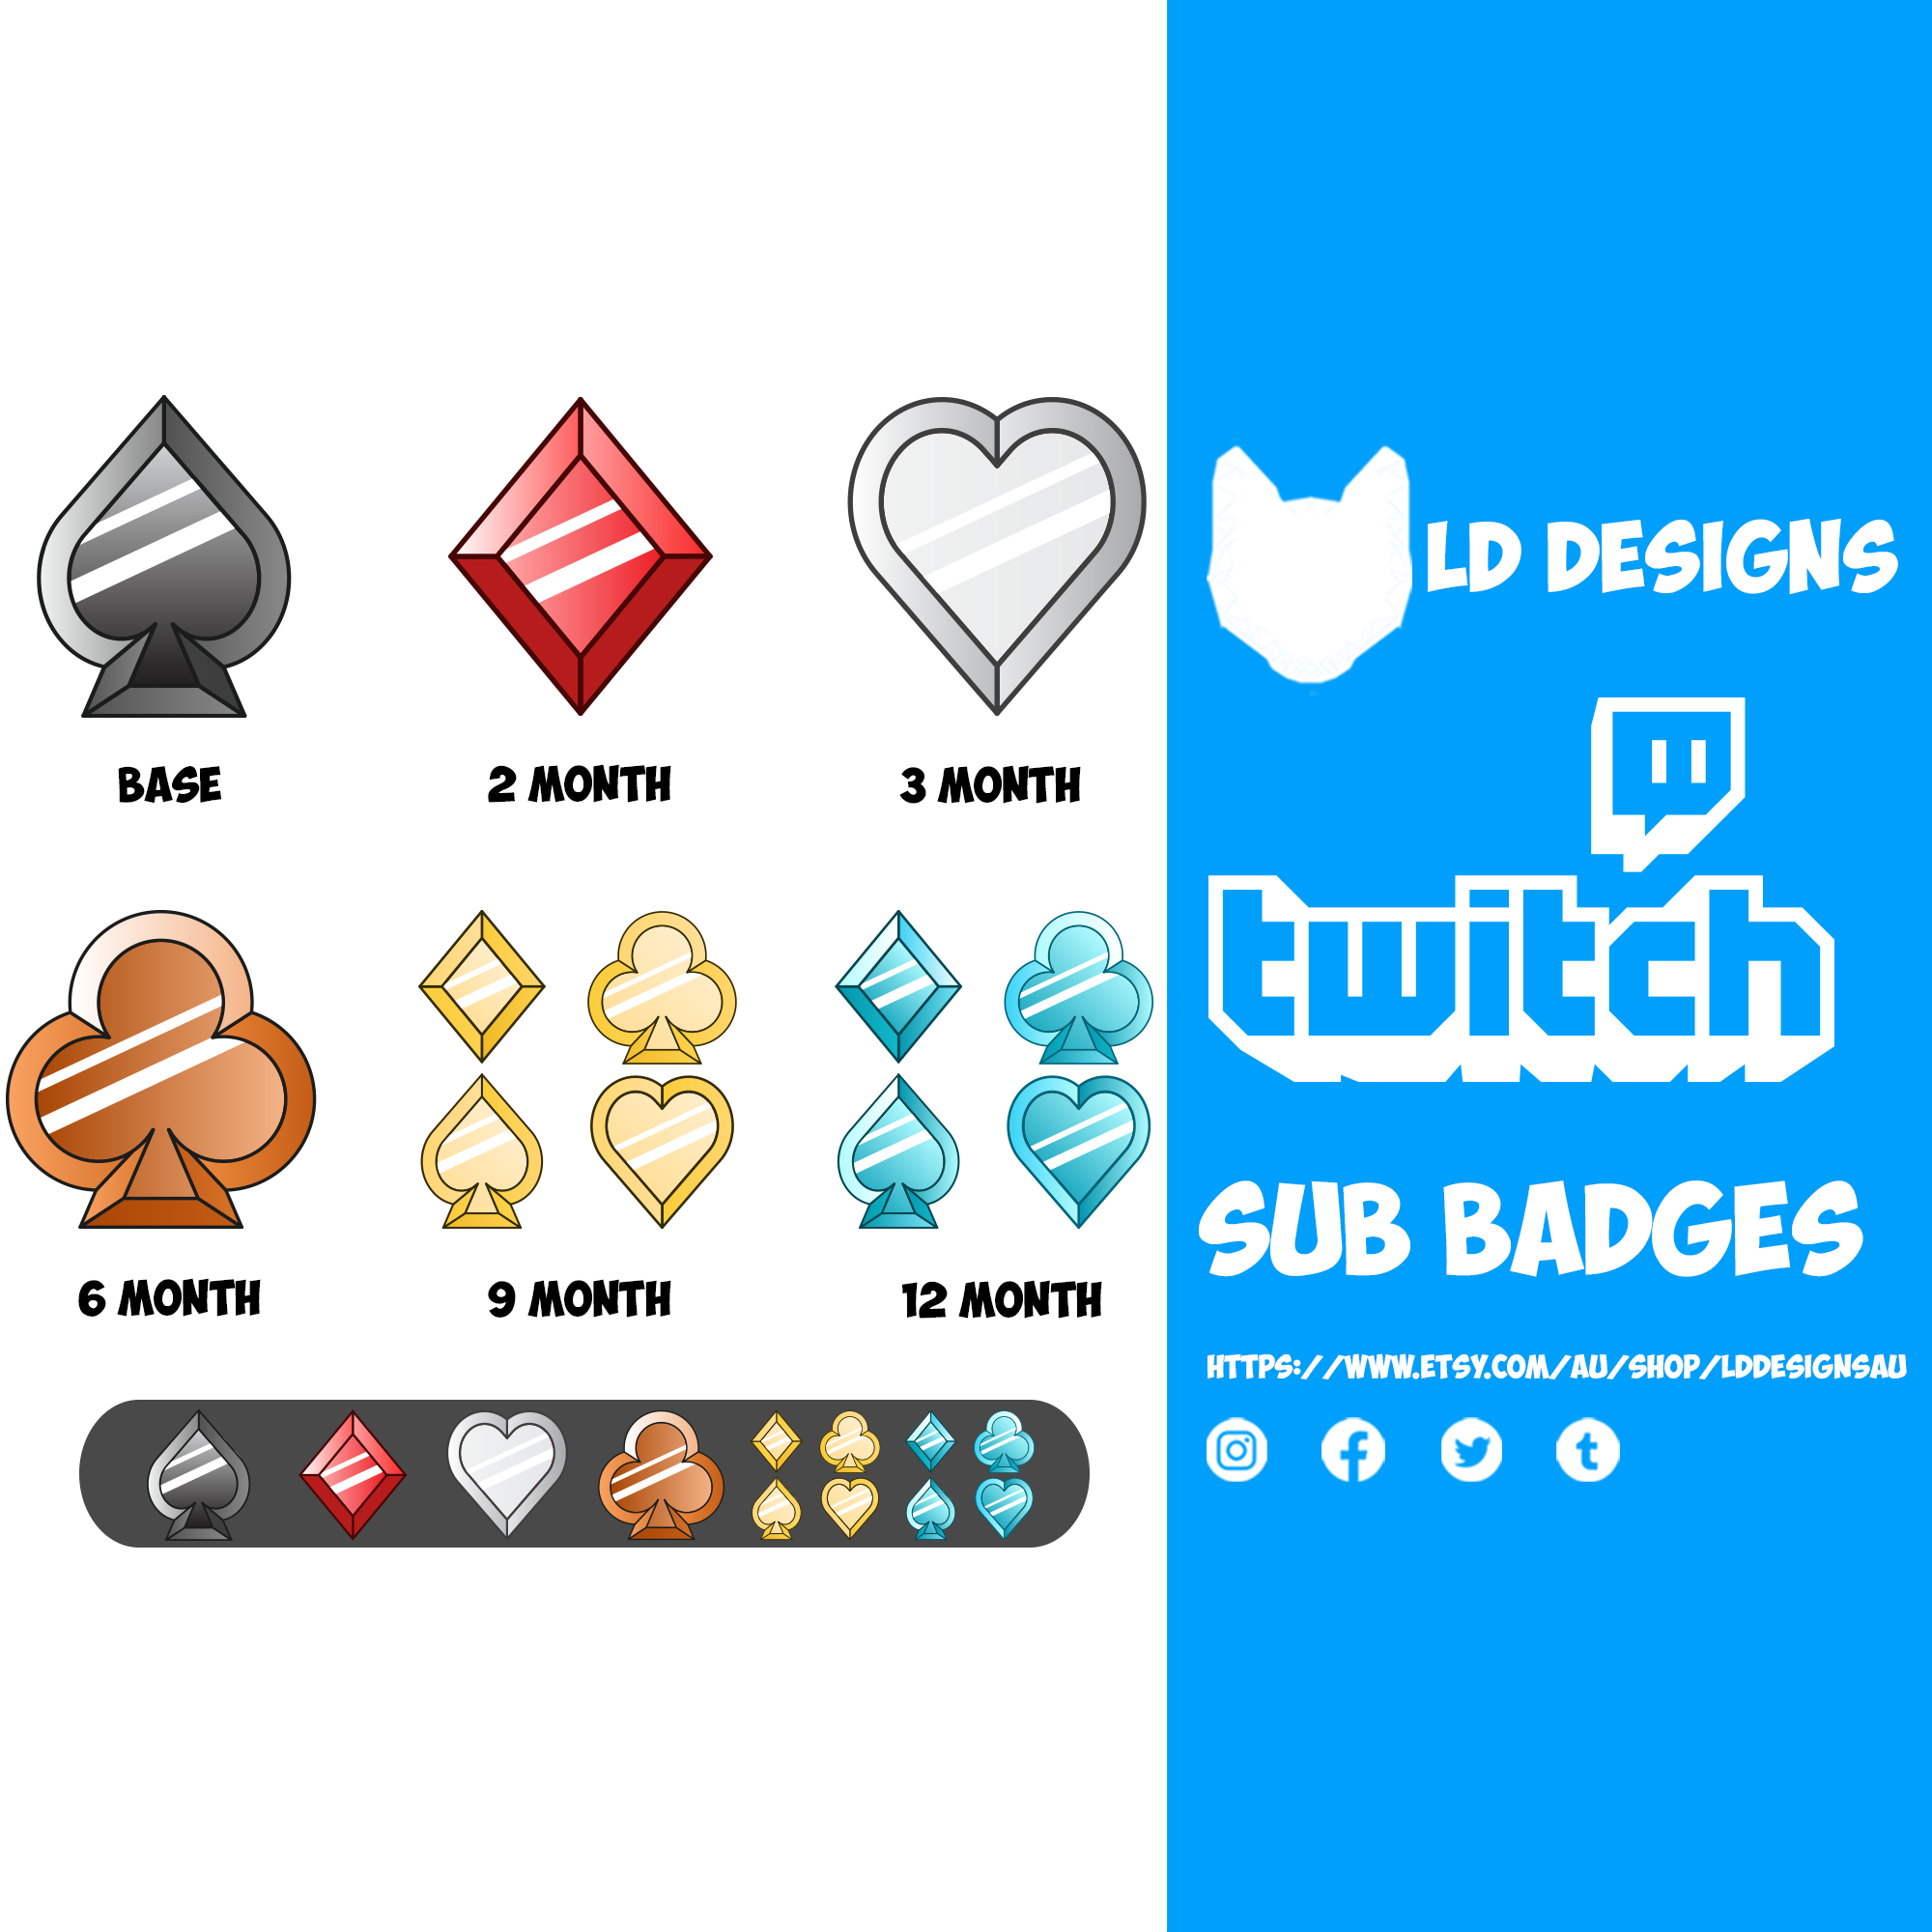 Twitch Sub Badges Card Suits Twitch Badge Submarine